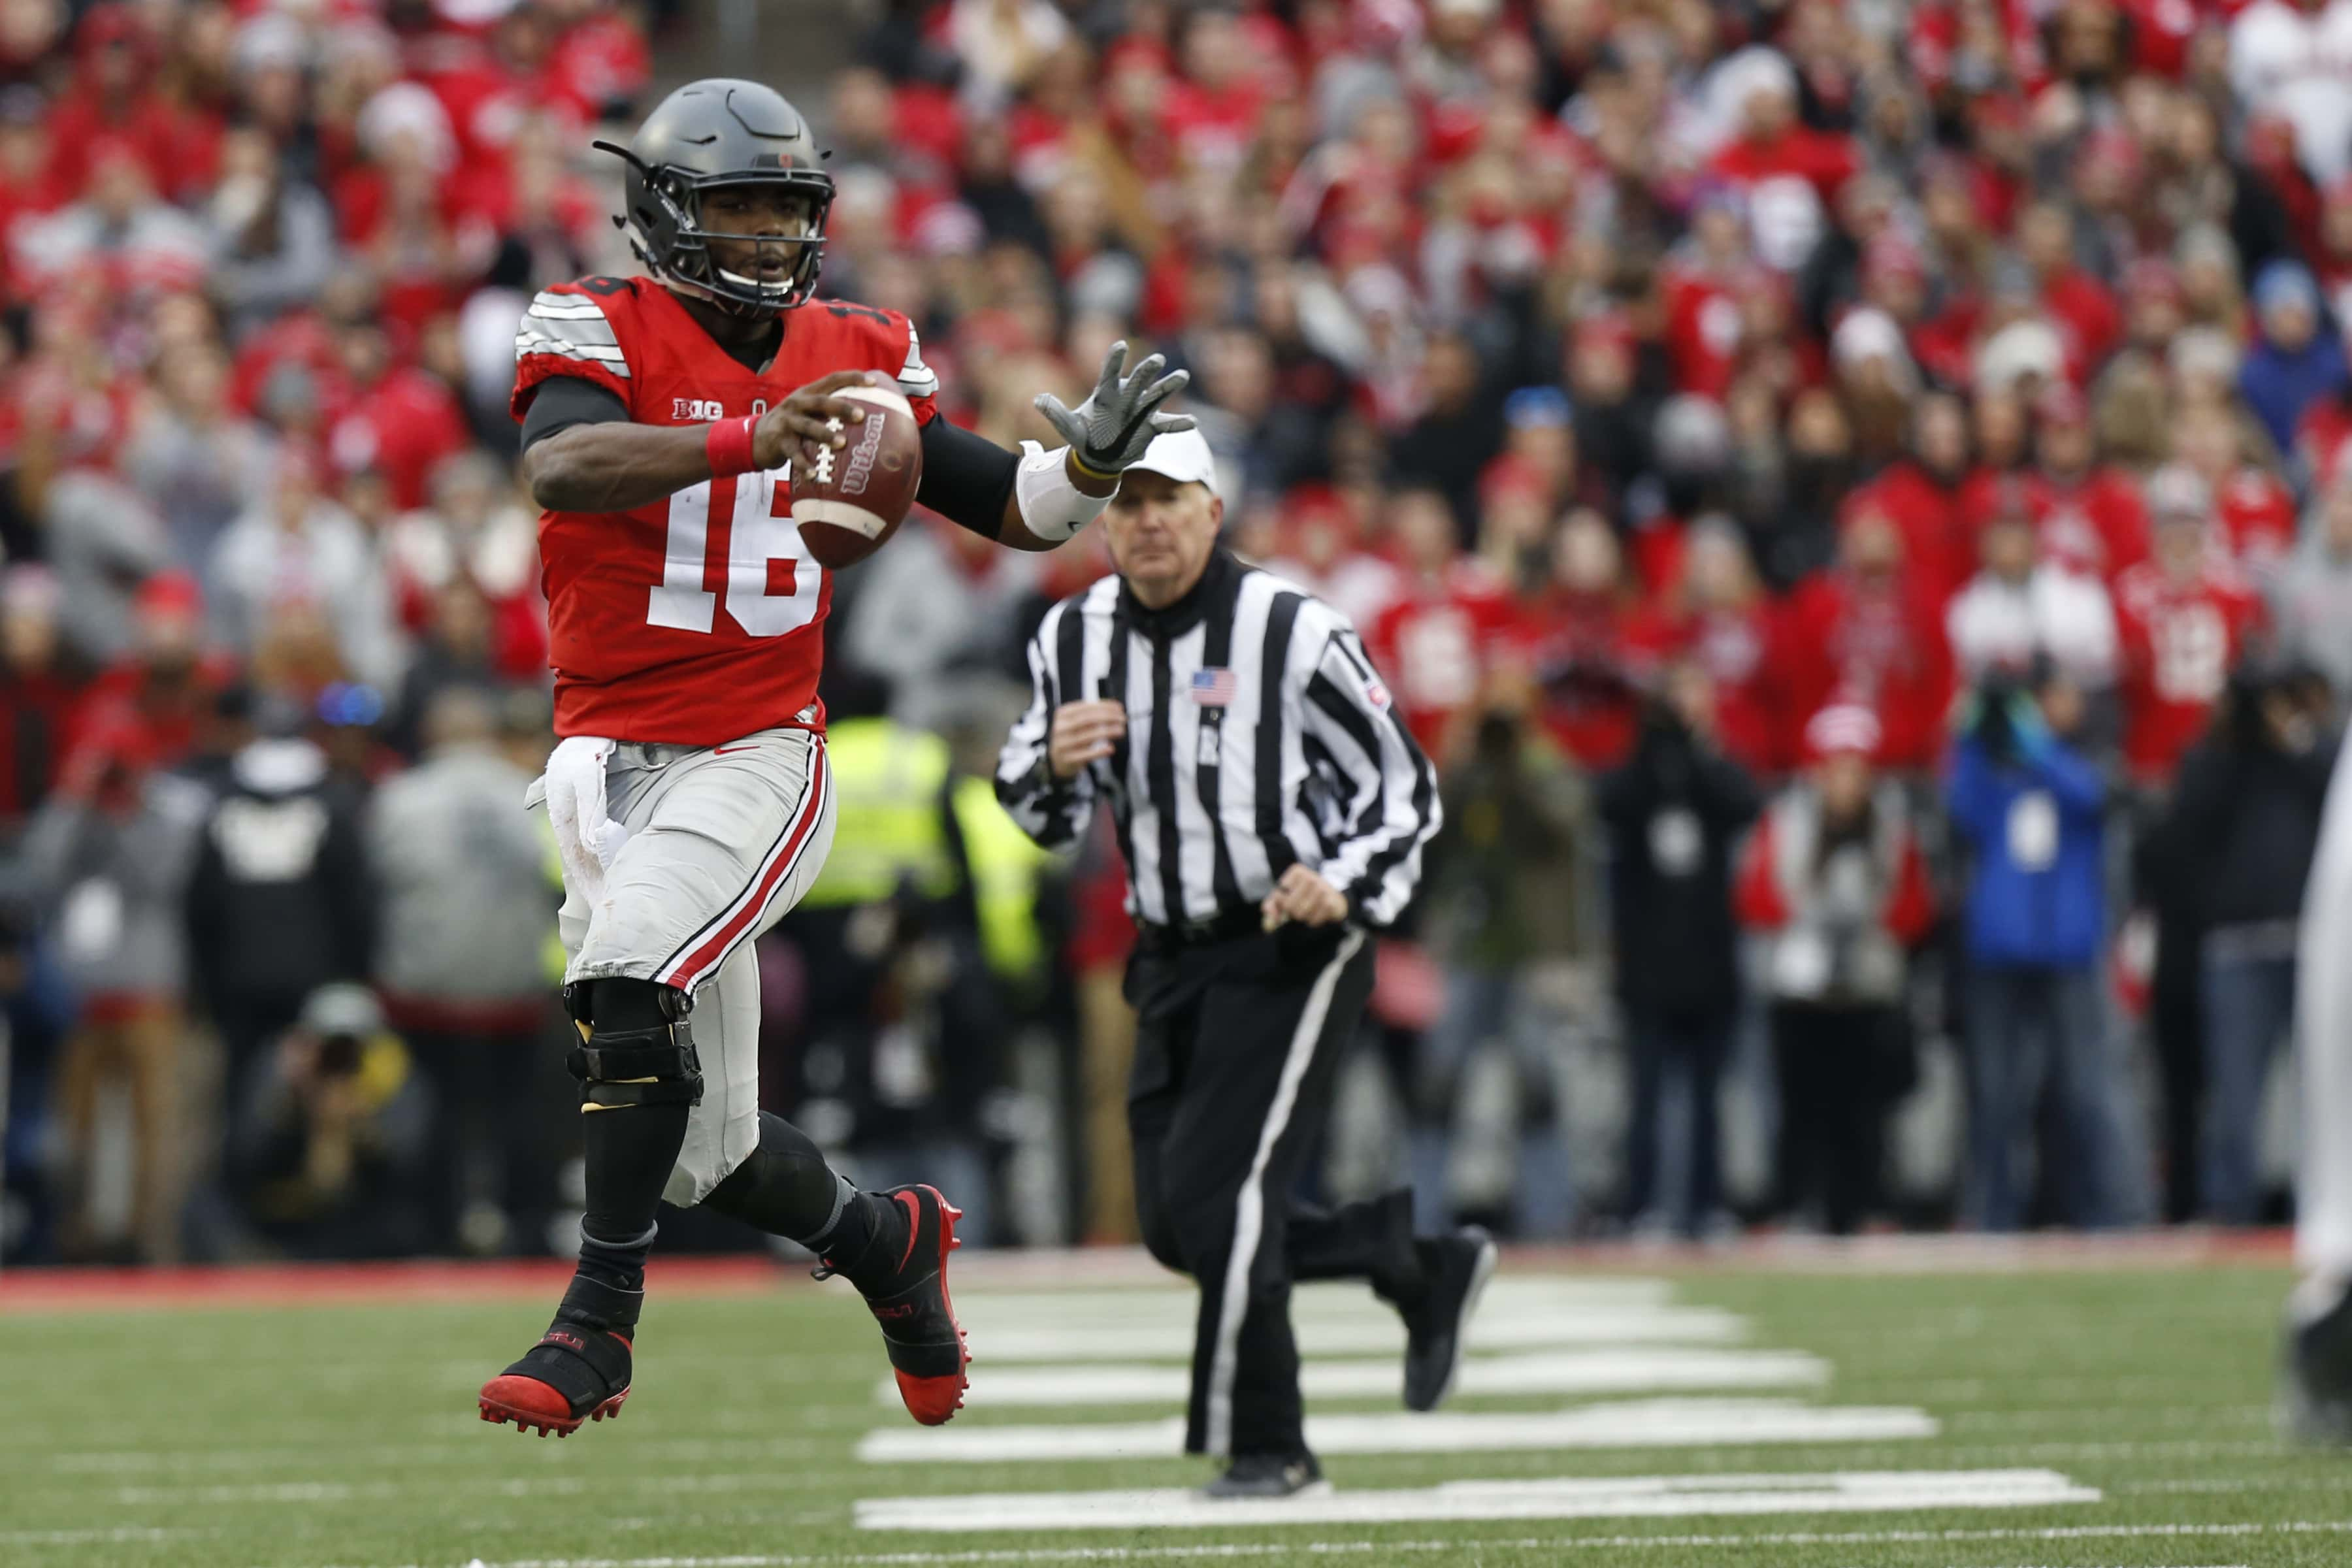 Ohio State quarterback J.T. Barrett plays against Michigan in an NCAA college football game Saturday, Nov. 26, 2016, in Columbus, Ohio. (AP Photo/Jay LaPrete)